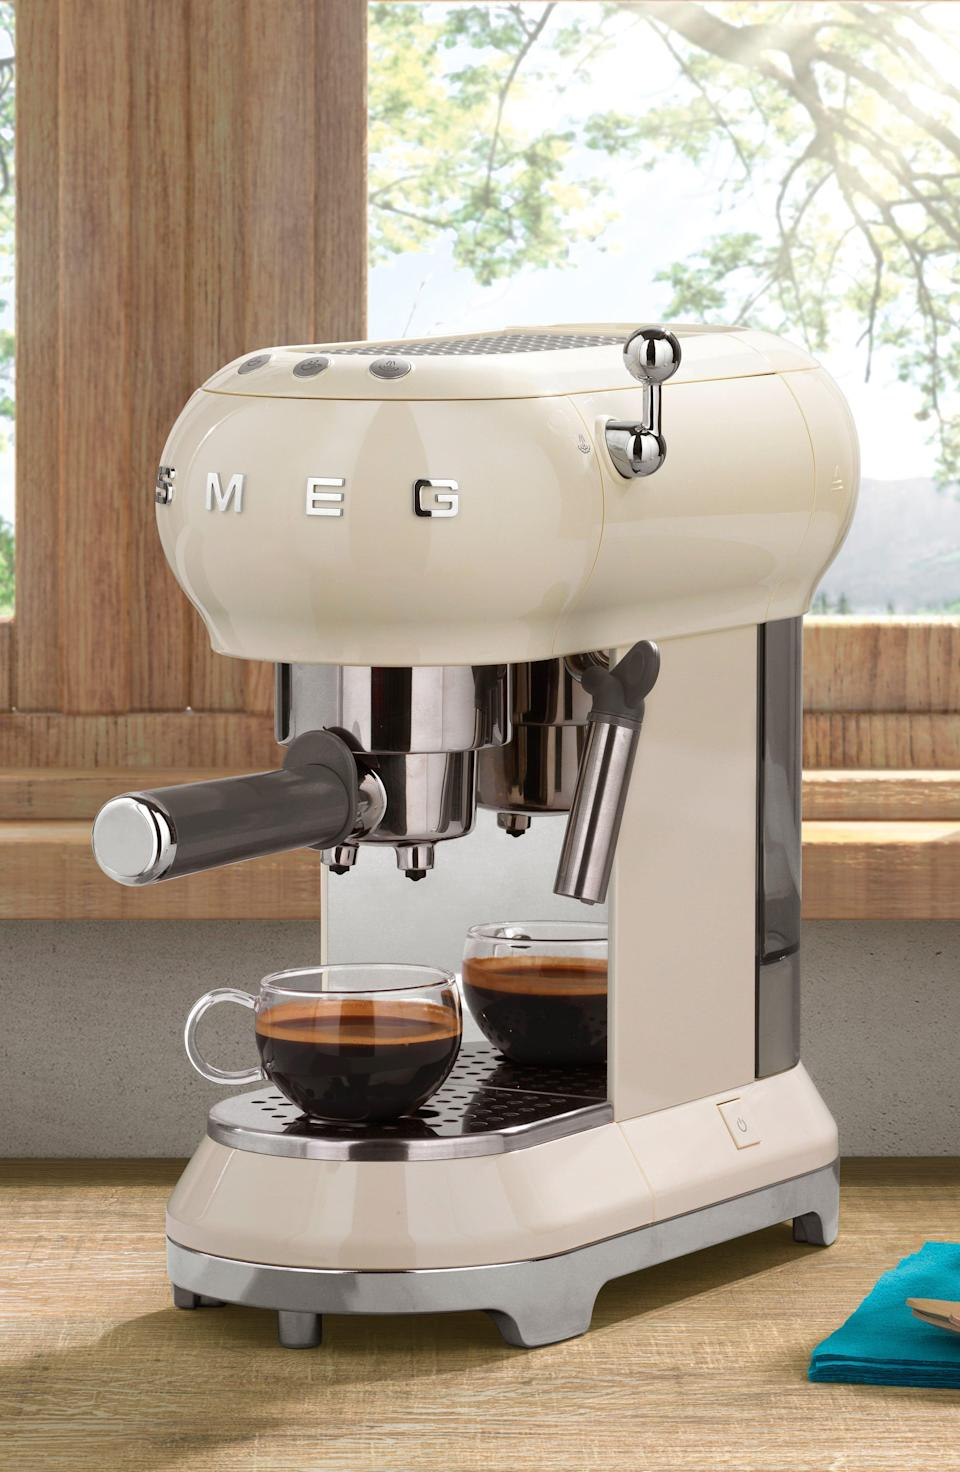 """<p><strong>SMEG</strong></p><p>nordstrom.com</p><p><strong>$367.46</strong></p><p><a href=""""https://go.redirectingat.com?id=74968X1596630&url=https%3A%2F%2Fwww.nordstrom.com%2Fs%2Fsmeg-50s-retro-style-espresso-coffee-machine%2F4748586&sref=https%3A%2F%2Fwww.delish.com%2Fholiday-recipes%2Fchristmas%2Fg3132%2Fgift-coffee-obsessed%2F"""" rel=""""nofollow noopener"""" target=""""_blank"""" data-ylk=""""slk:BUY NOW"""" class=""""link rapid-noclick-resp"""">BUY NOW</a></p><p>This gorgeous, retro coffee machine will look amazing in any kitchen.</p>"""